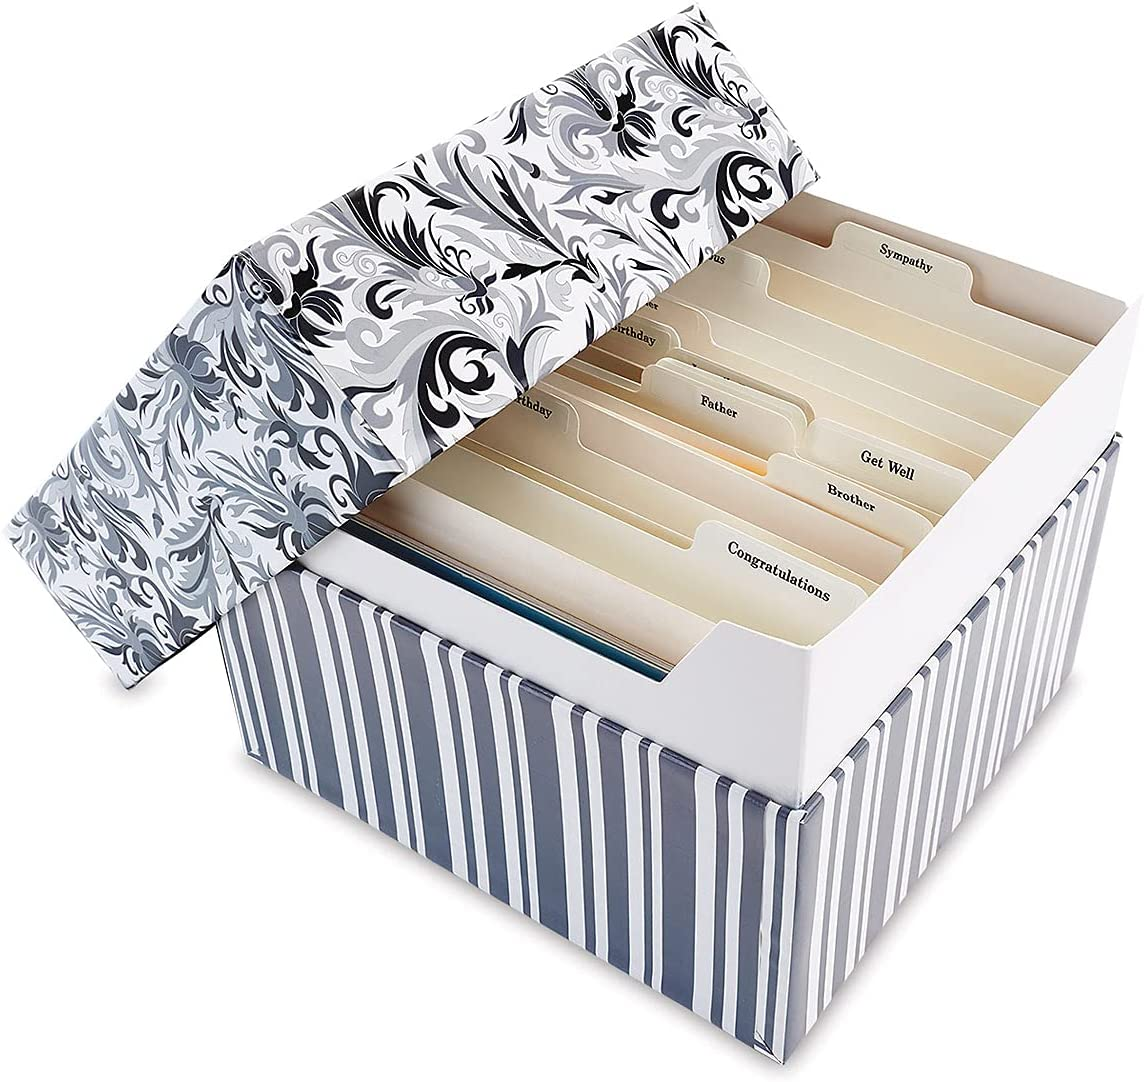 Black Elegance Card Organizer Box - Reservation cards Max 72% OFF not Stores 140+ inclu